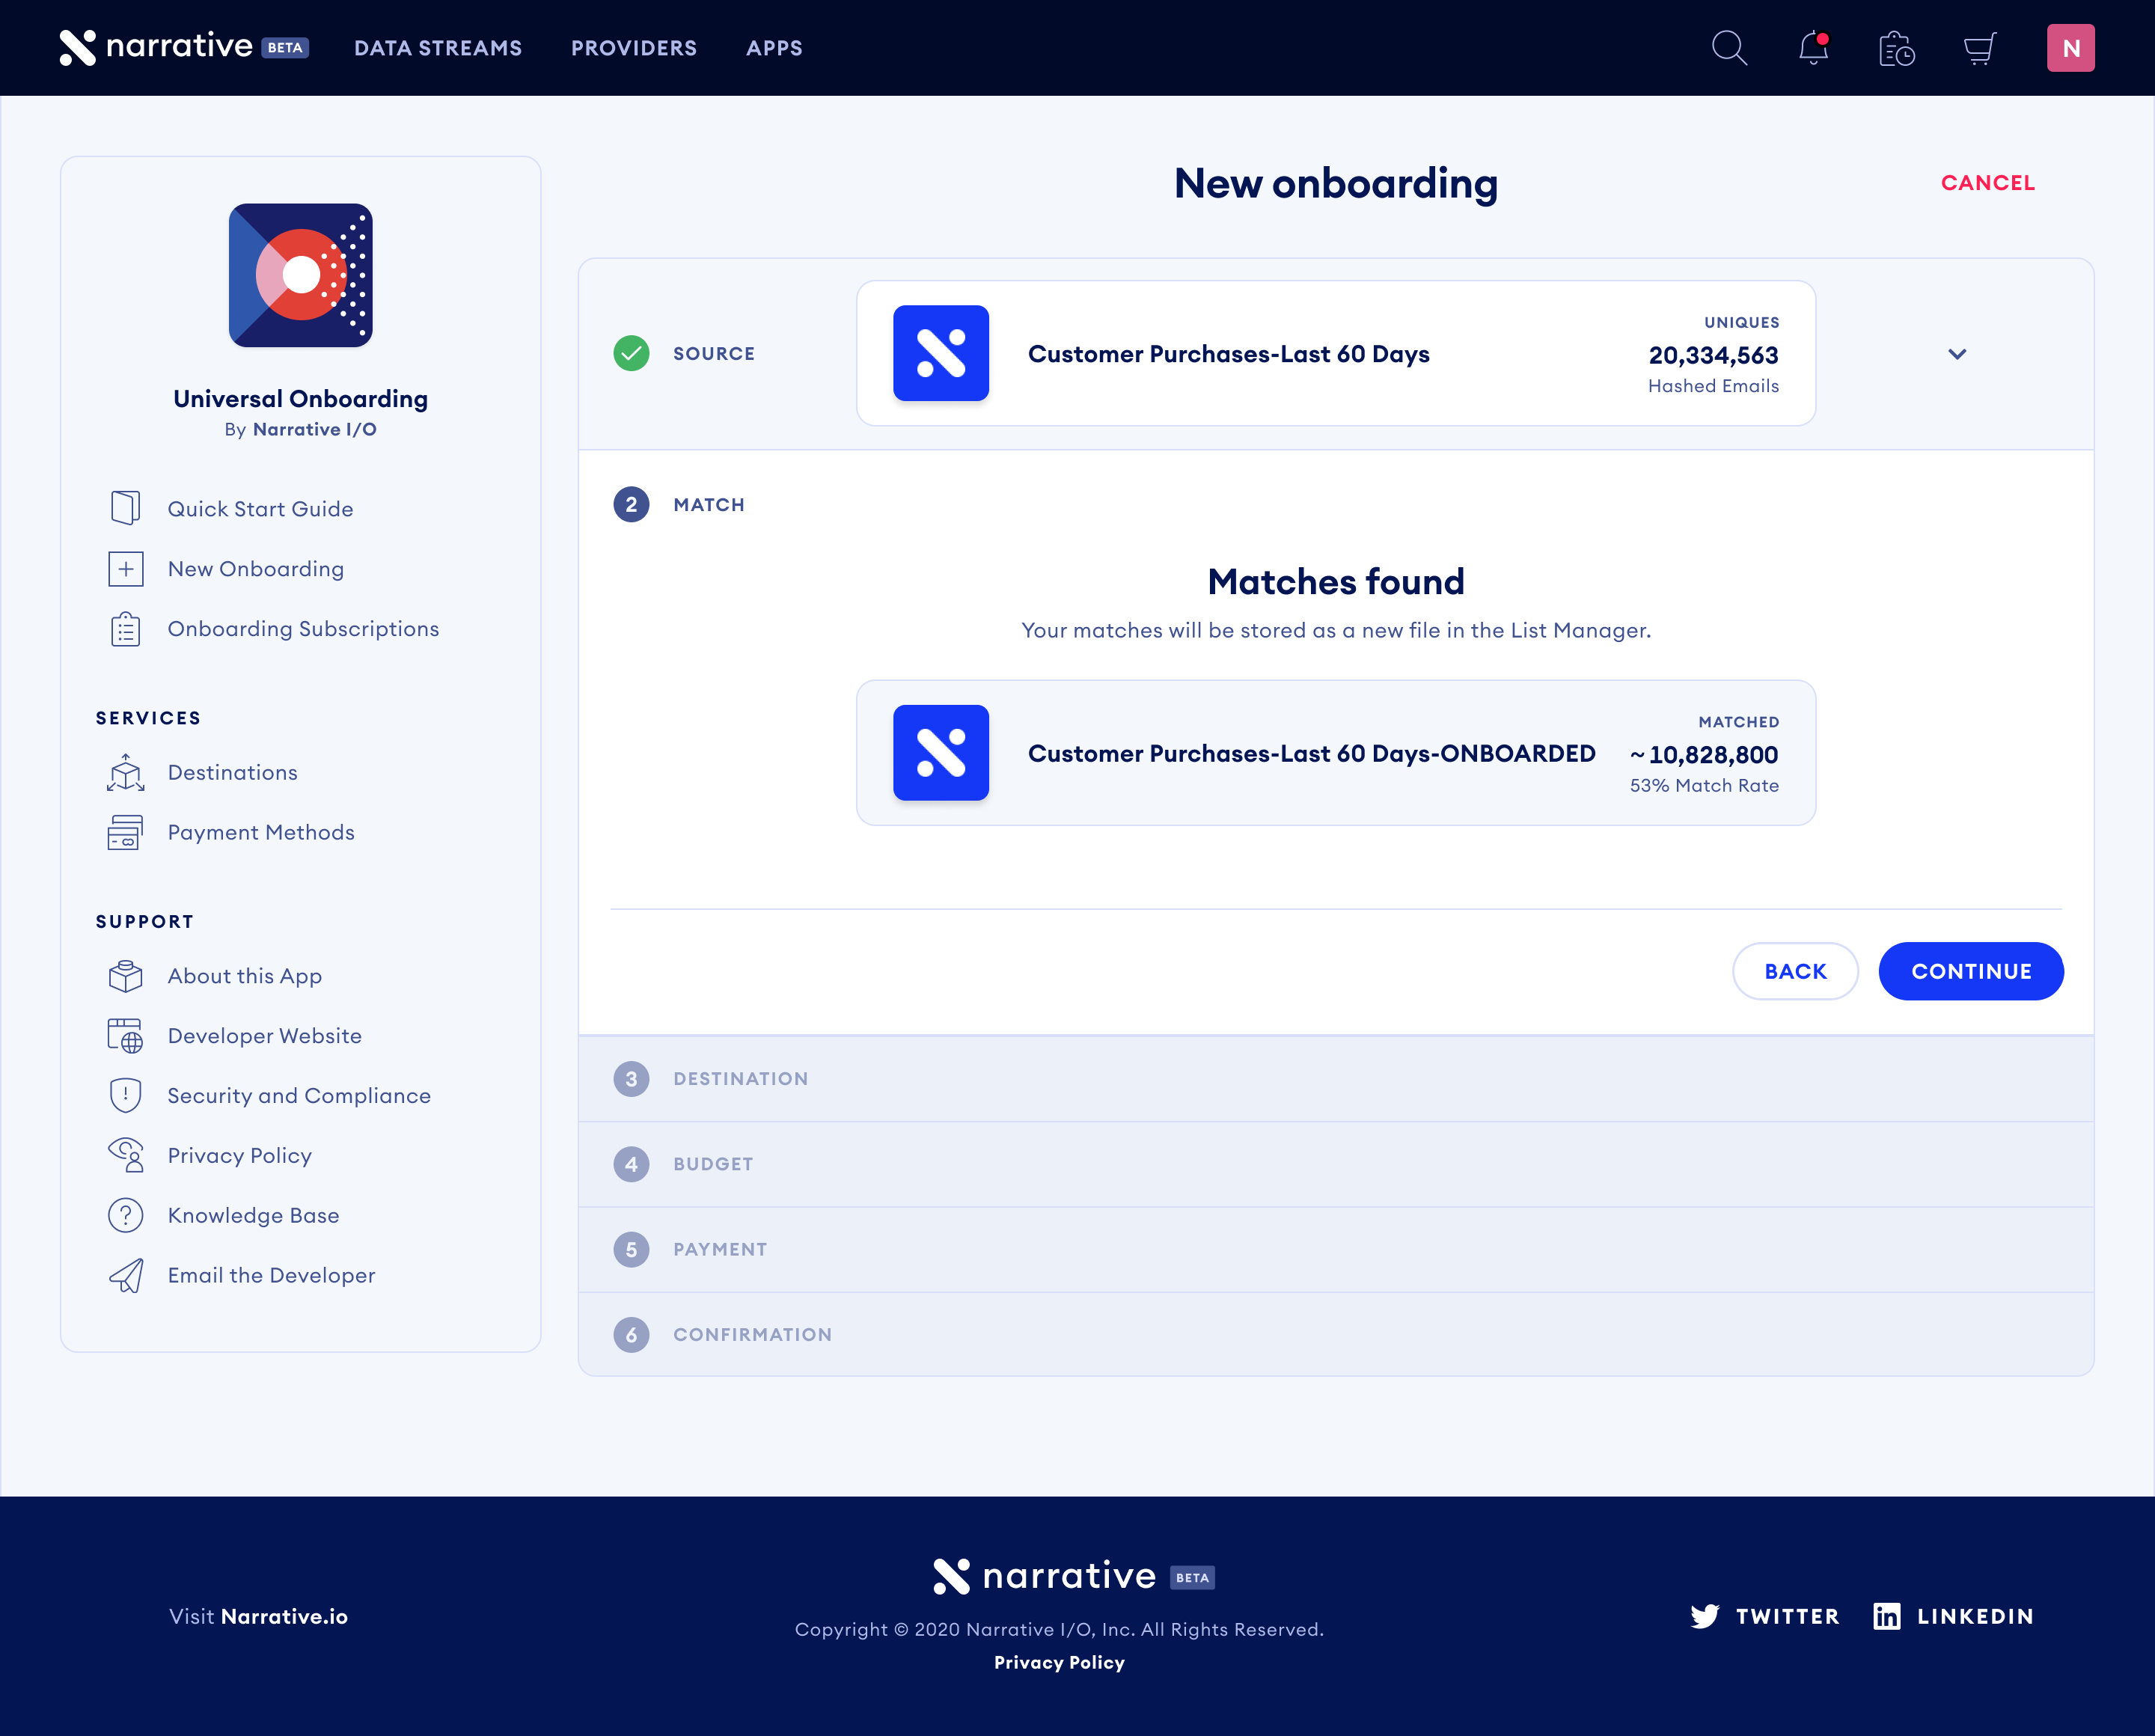 universal-onboarding-matches